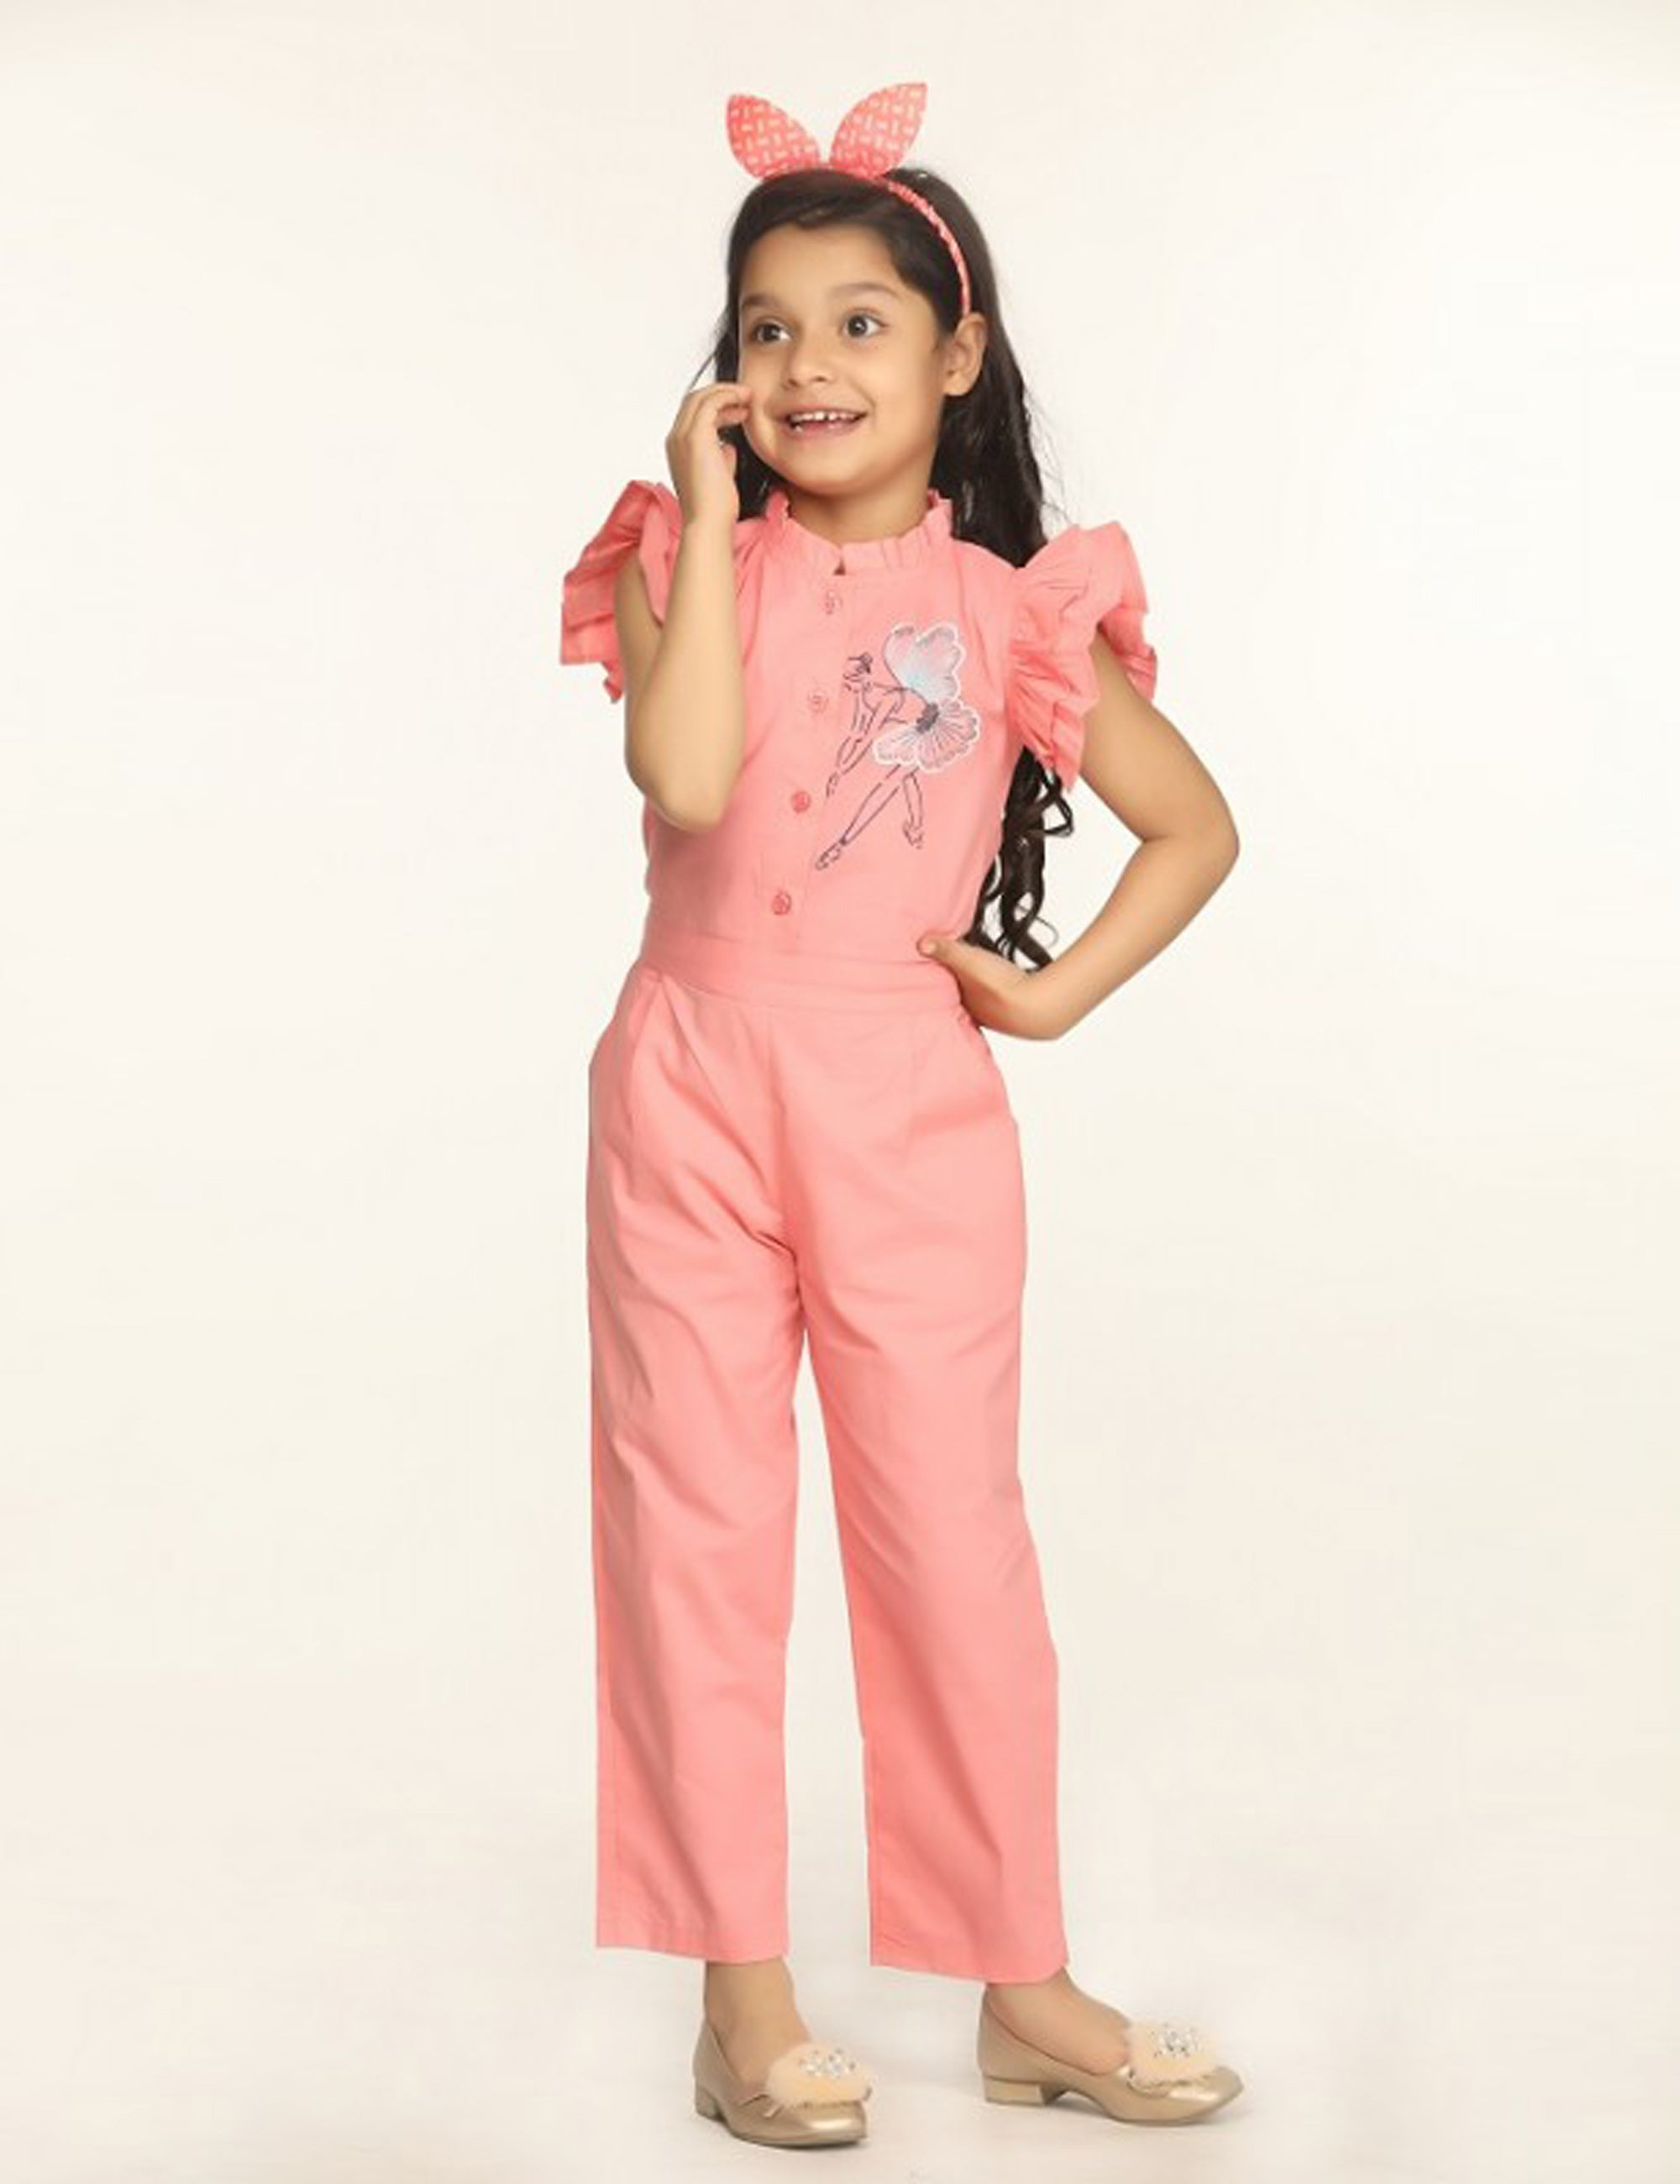 cbeb8cce99 Buy Ballerina Embrodiery Full Jumpsuit at best Price - Mini Firgun